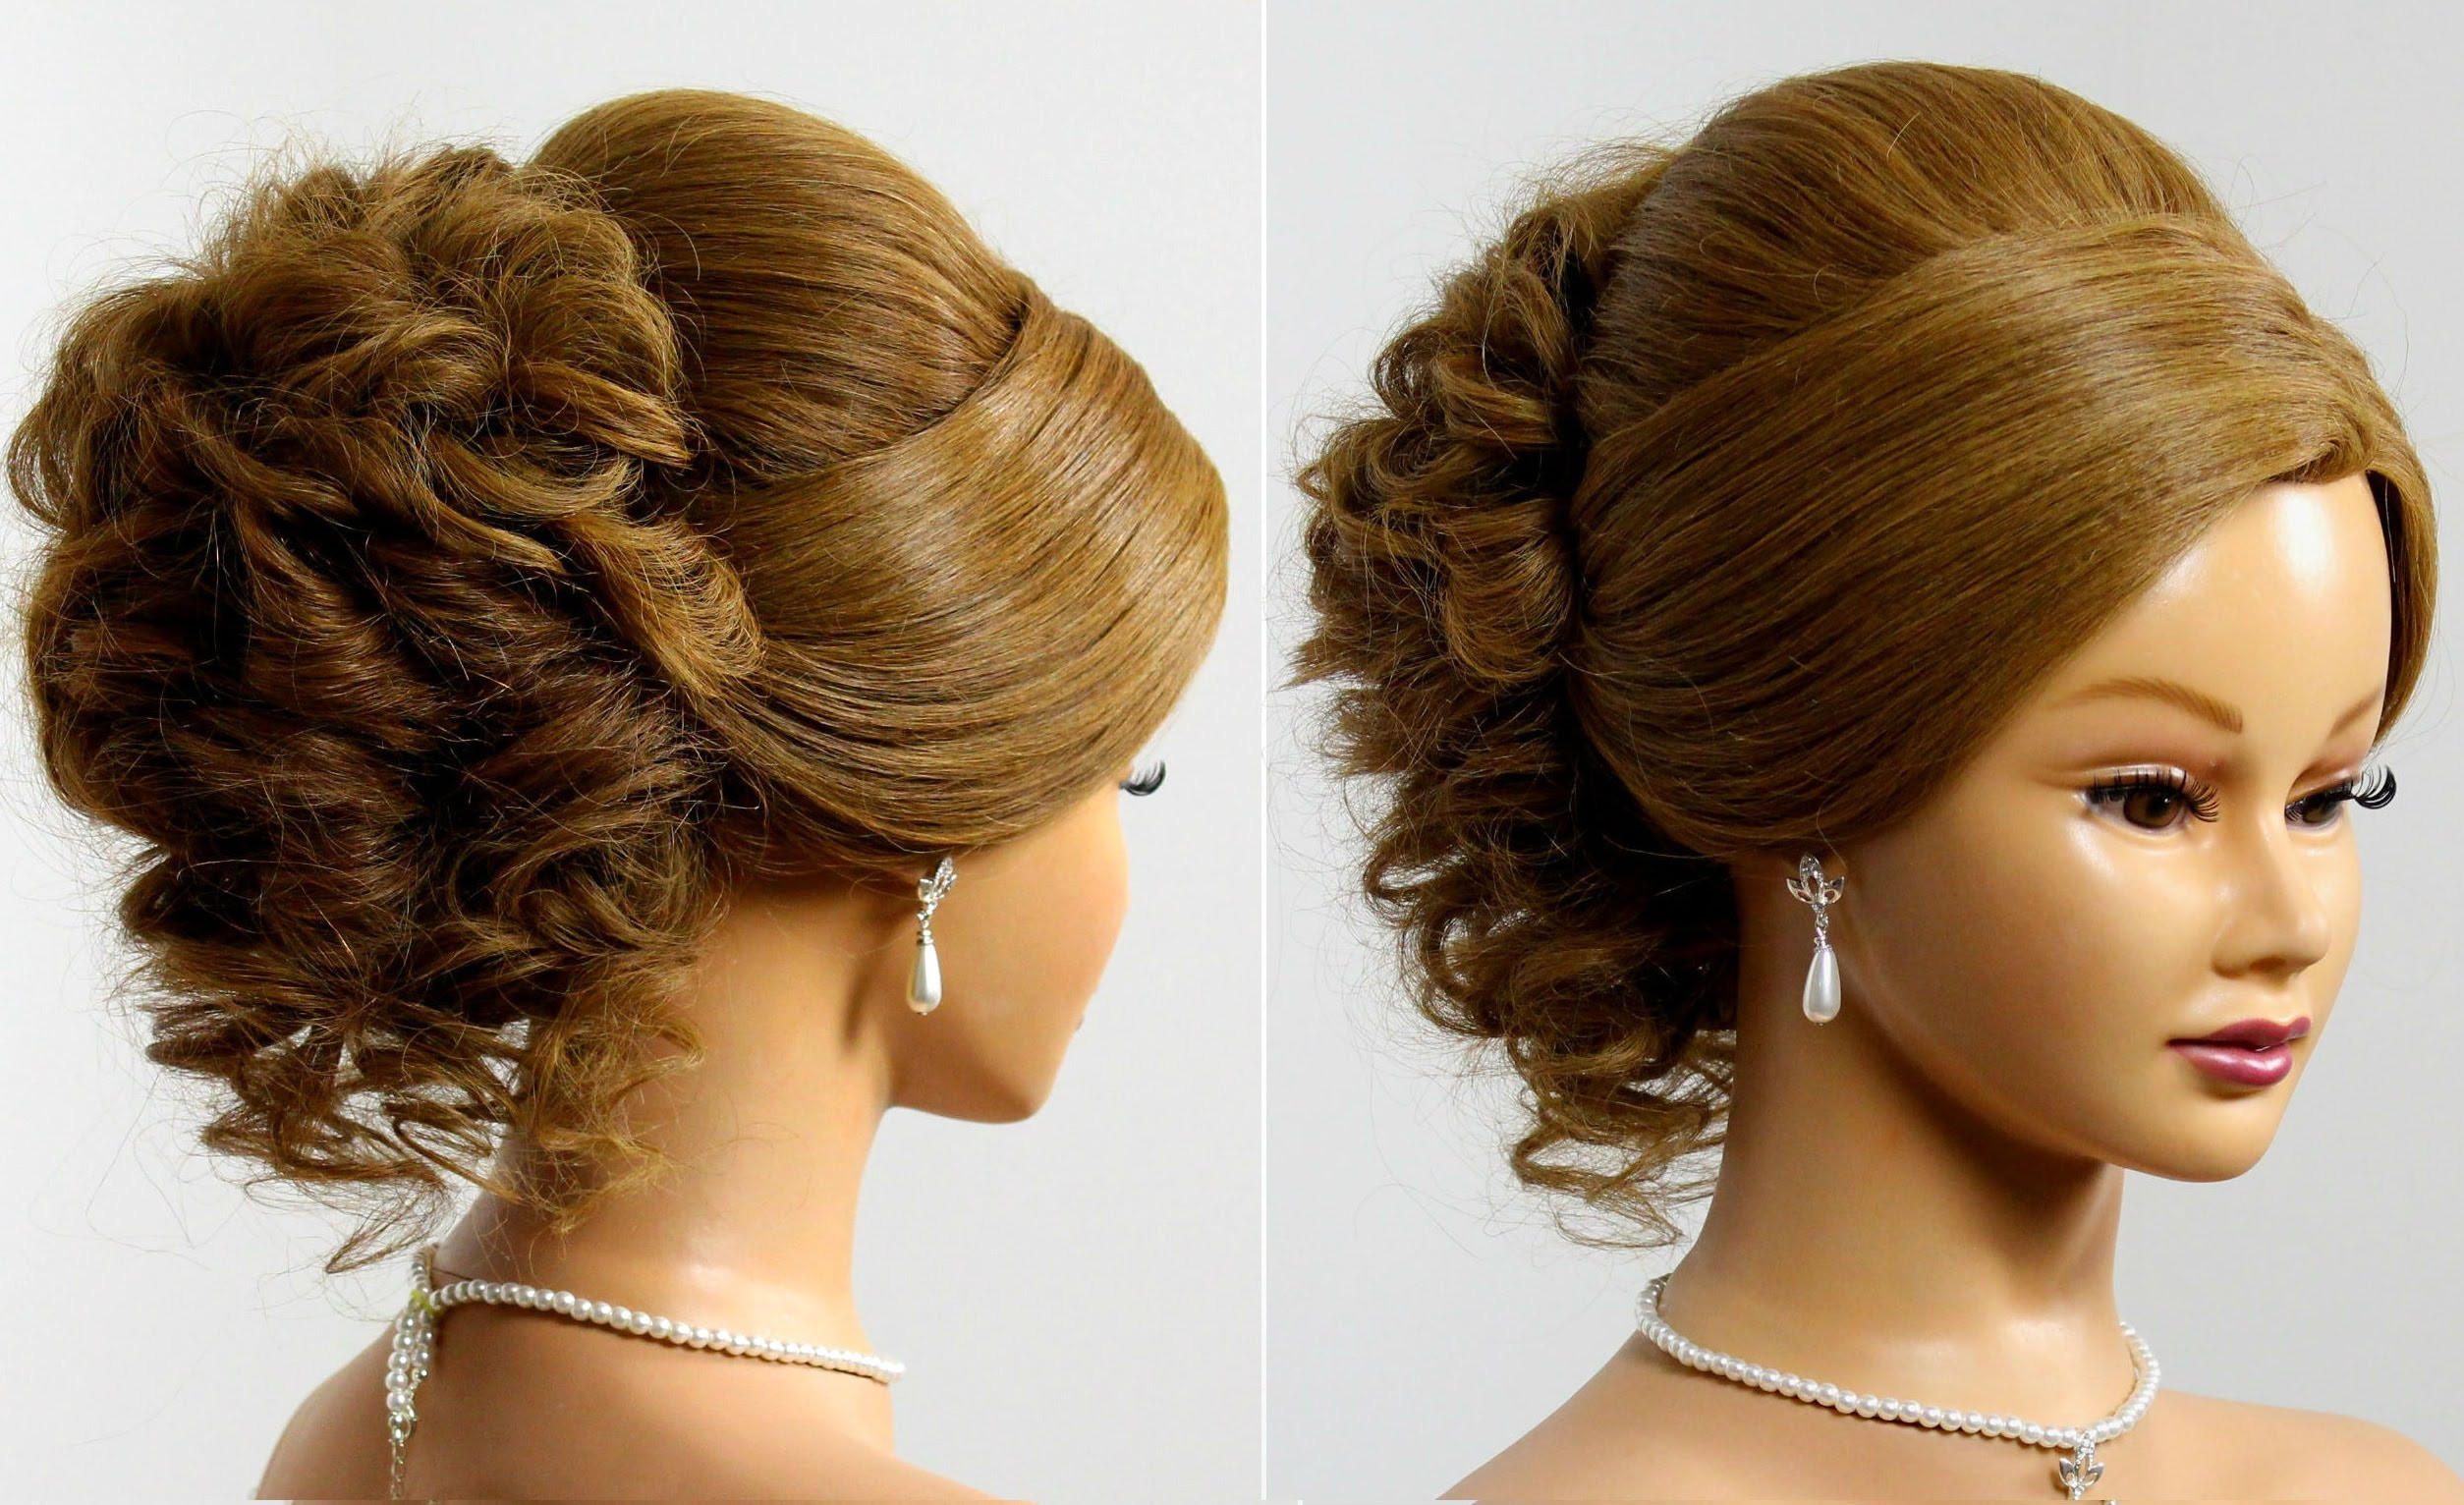 Prom Hairstyles For Medium Hair Up  Prom wedding updo Hairstyle for long medium hair Makeup